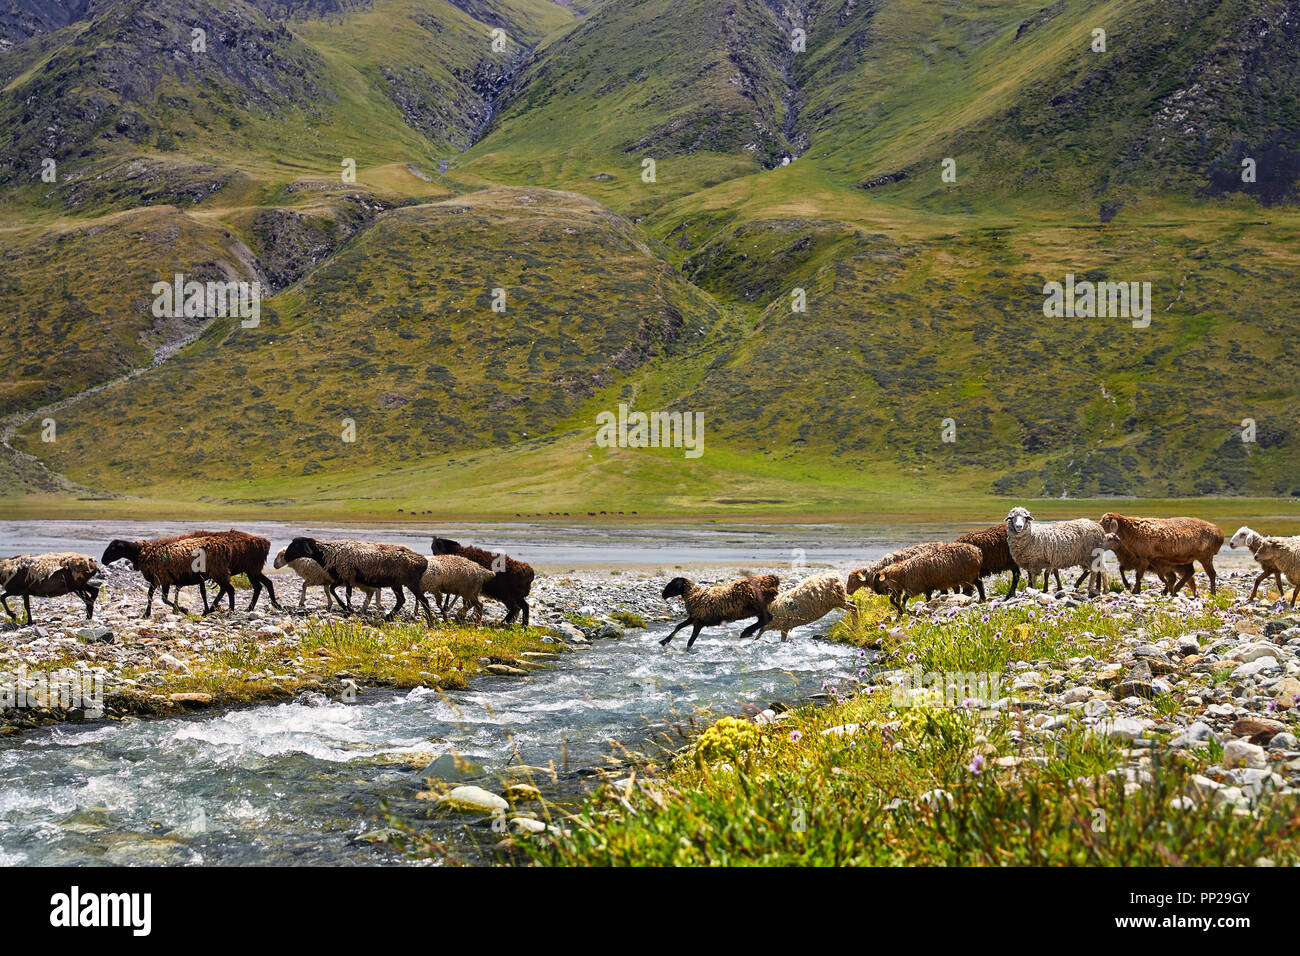 Sheep herd crossing the river in the mountain valley of Kyrgyzstan, Central Asia - Stock Image